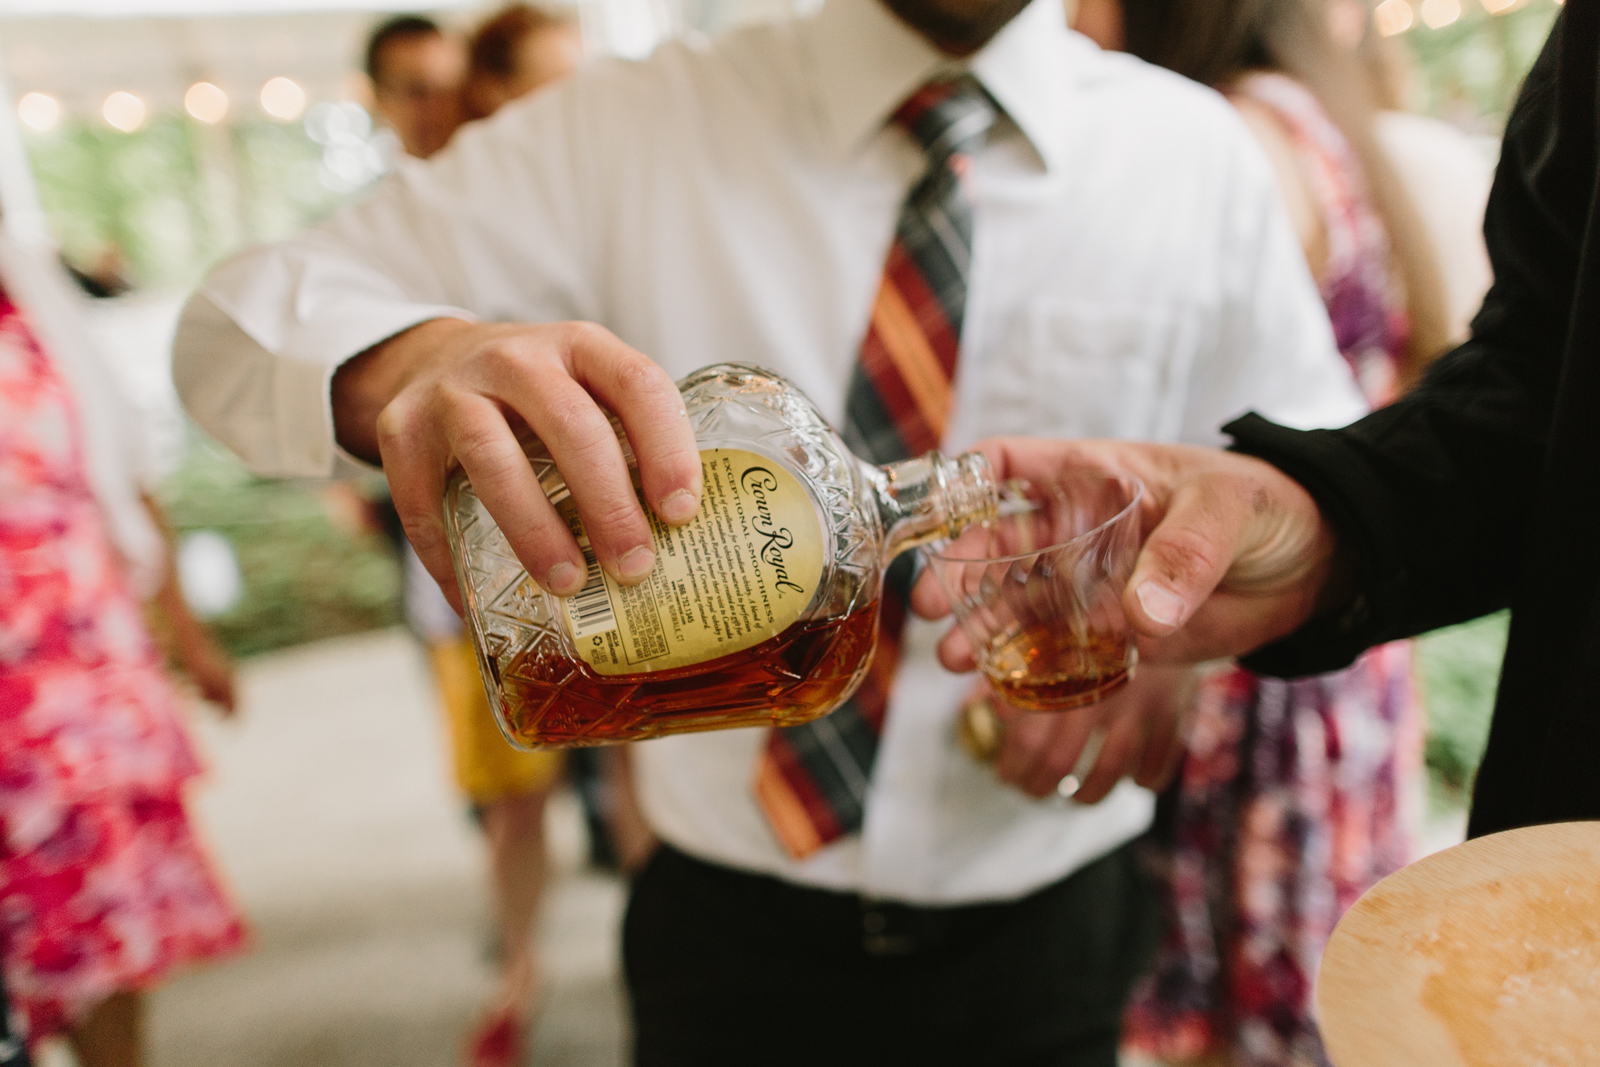 Tequila is poured at wedding reception at Bridal Veil Lakes in Corbett, Oregon